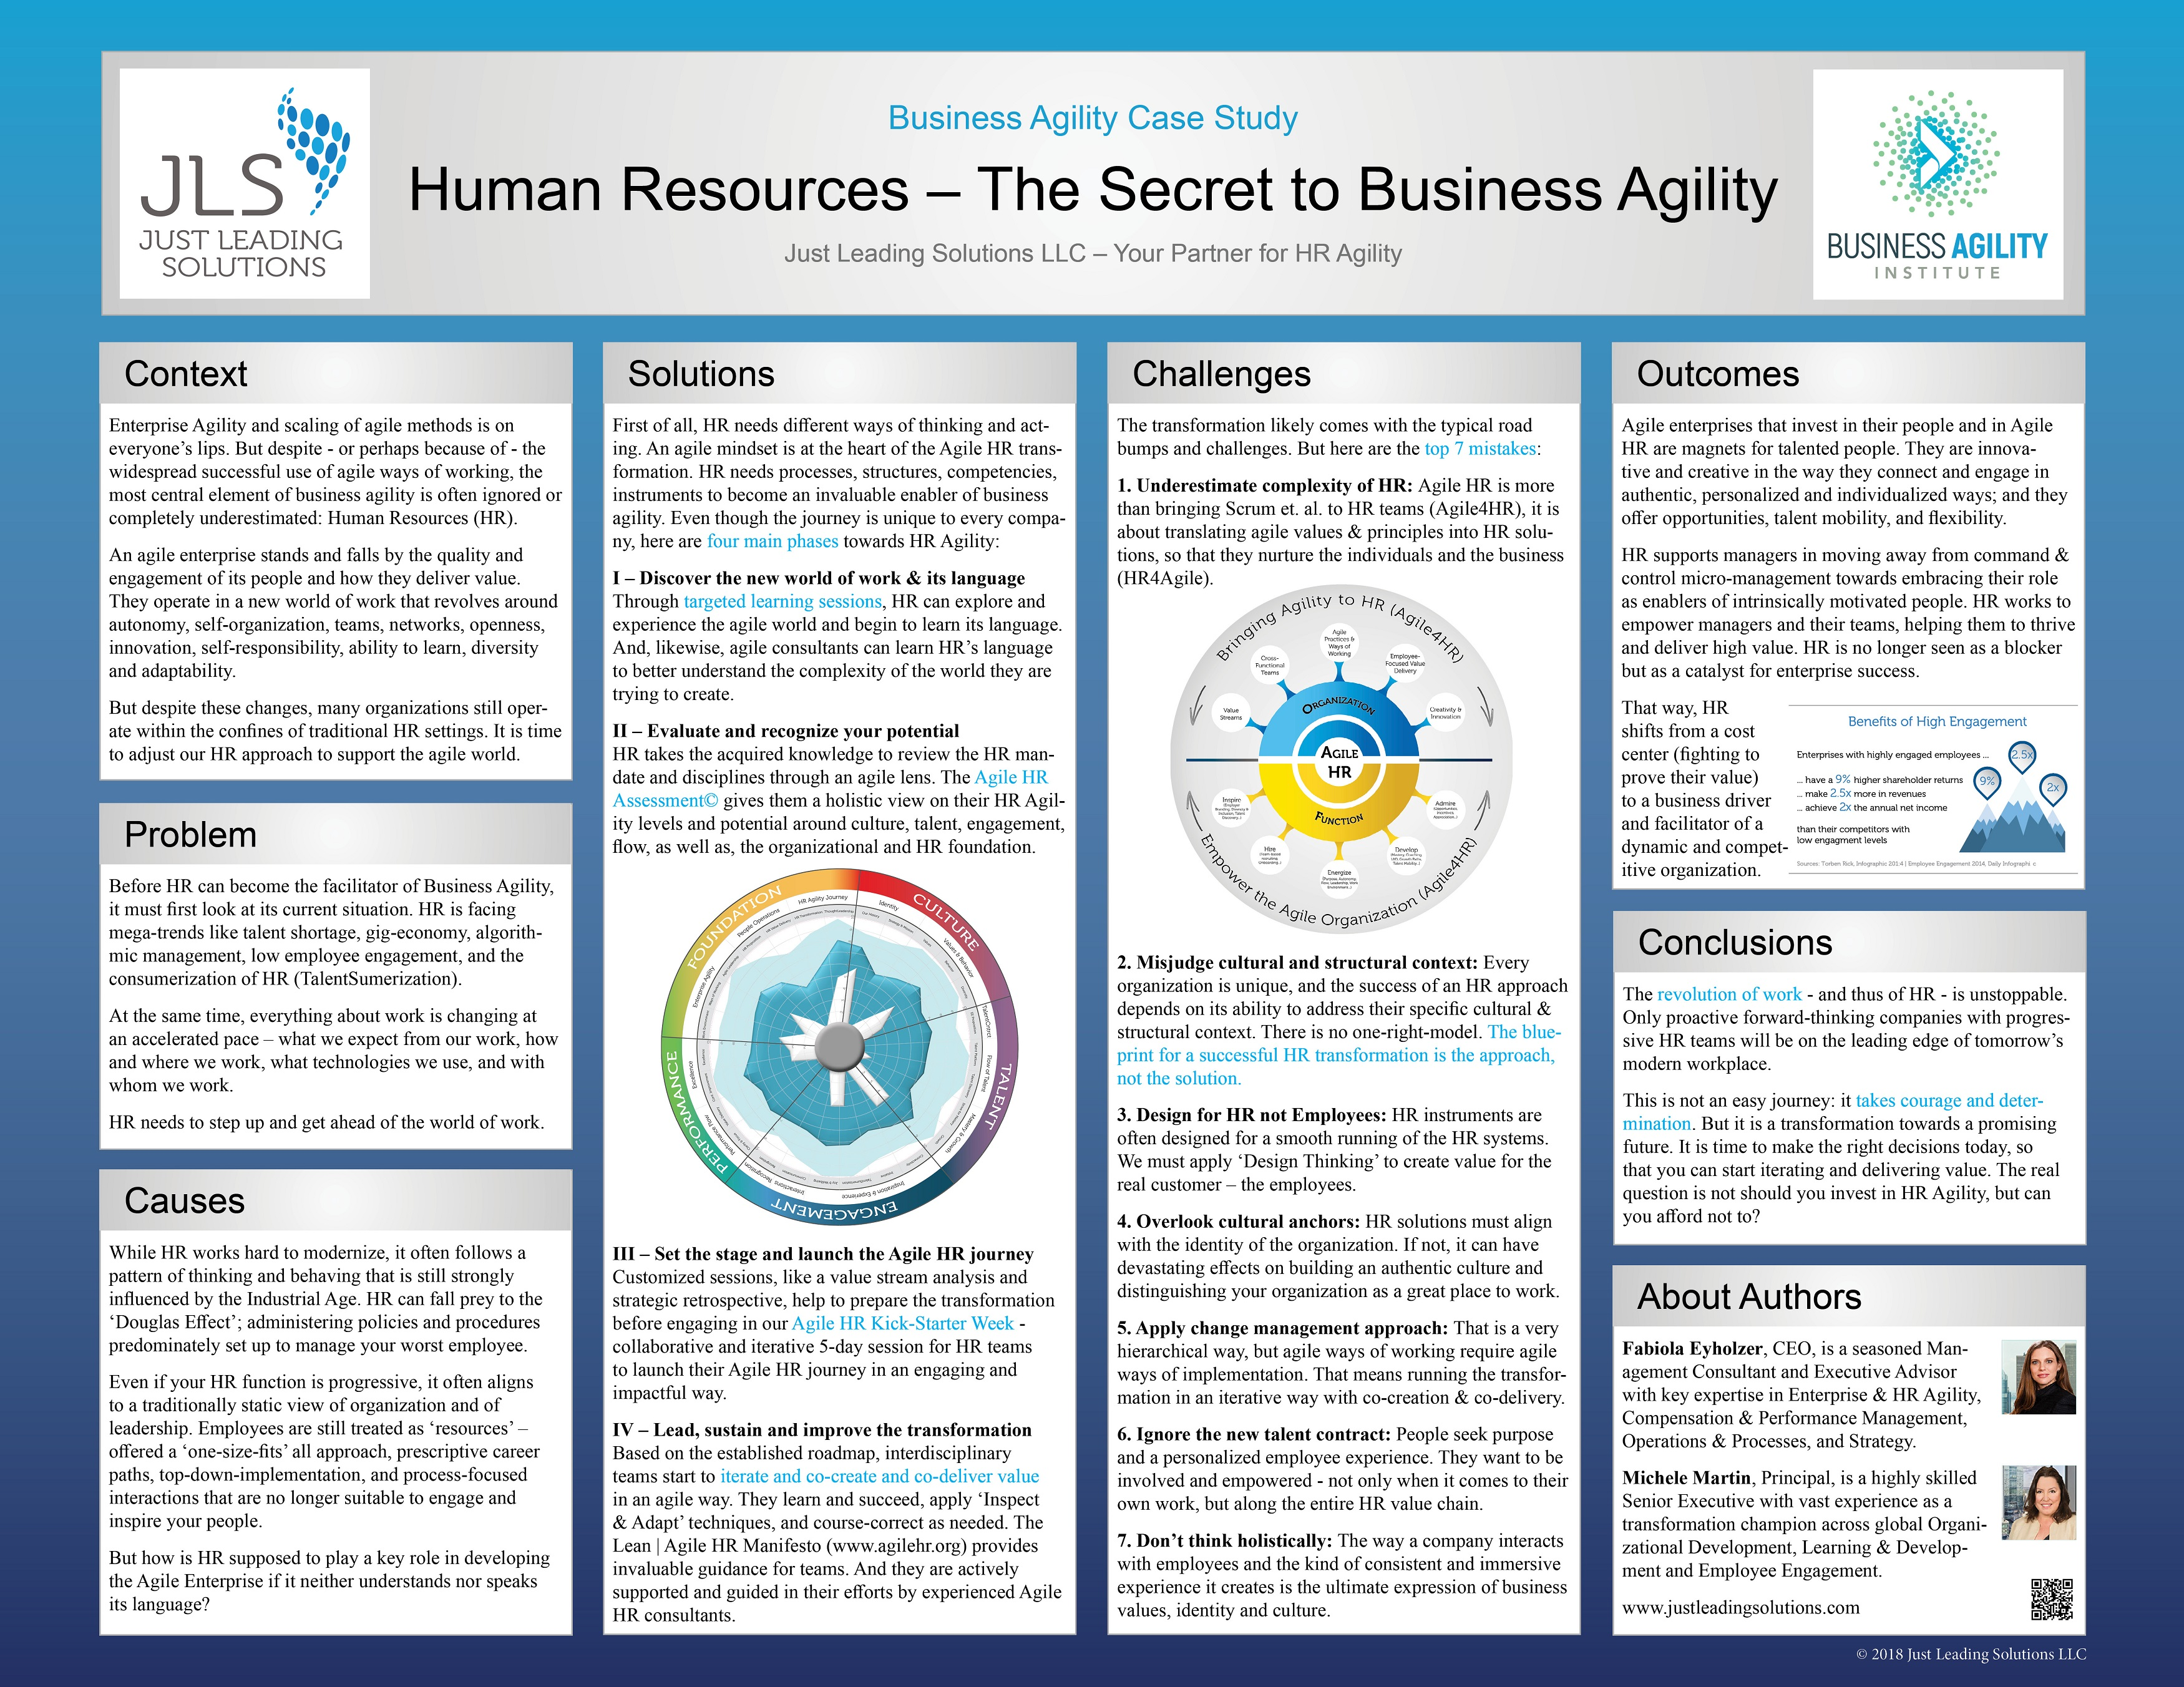 Human Resources - The Secret the Business Agility (Poster)